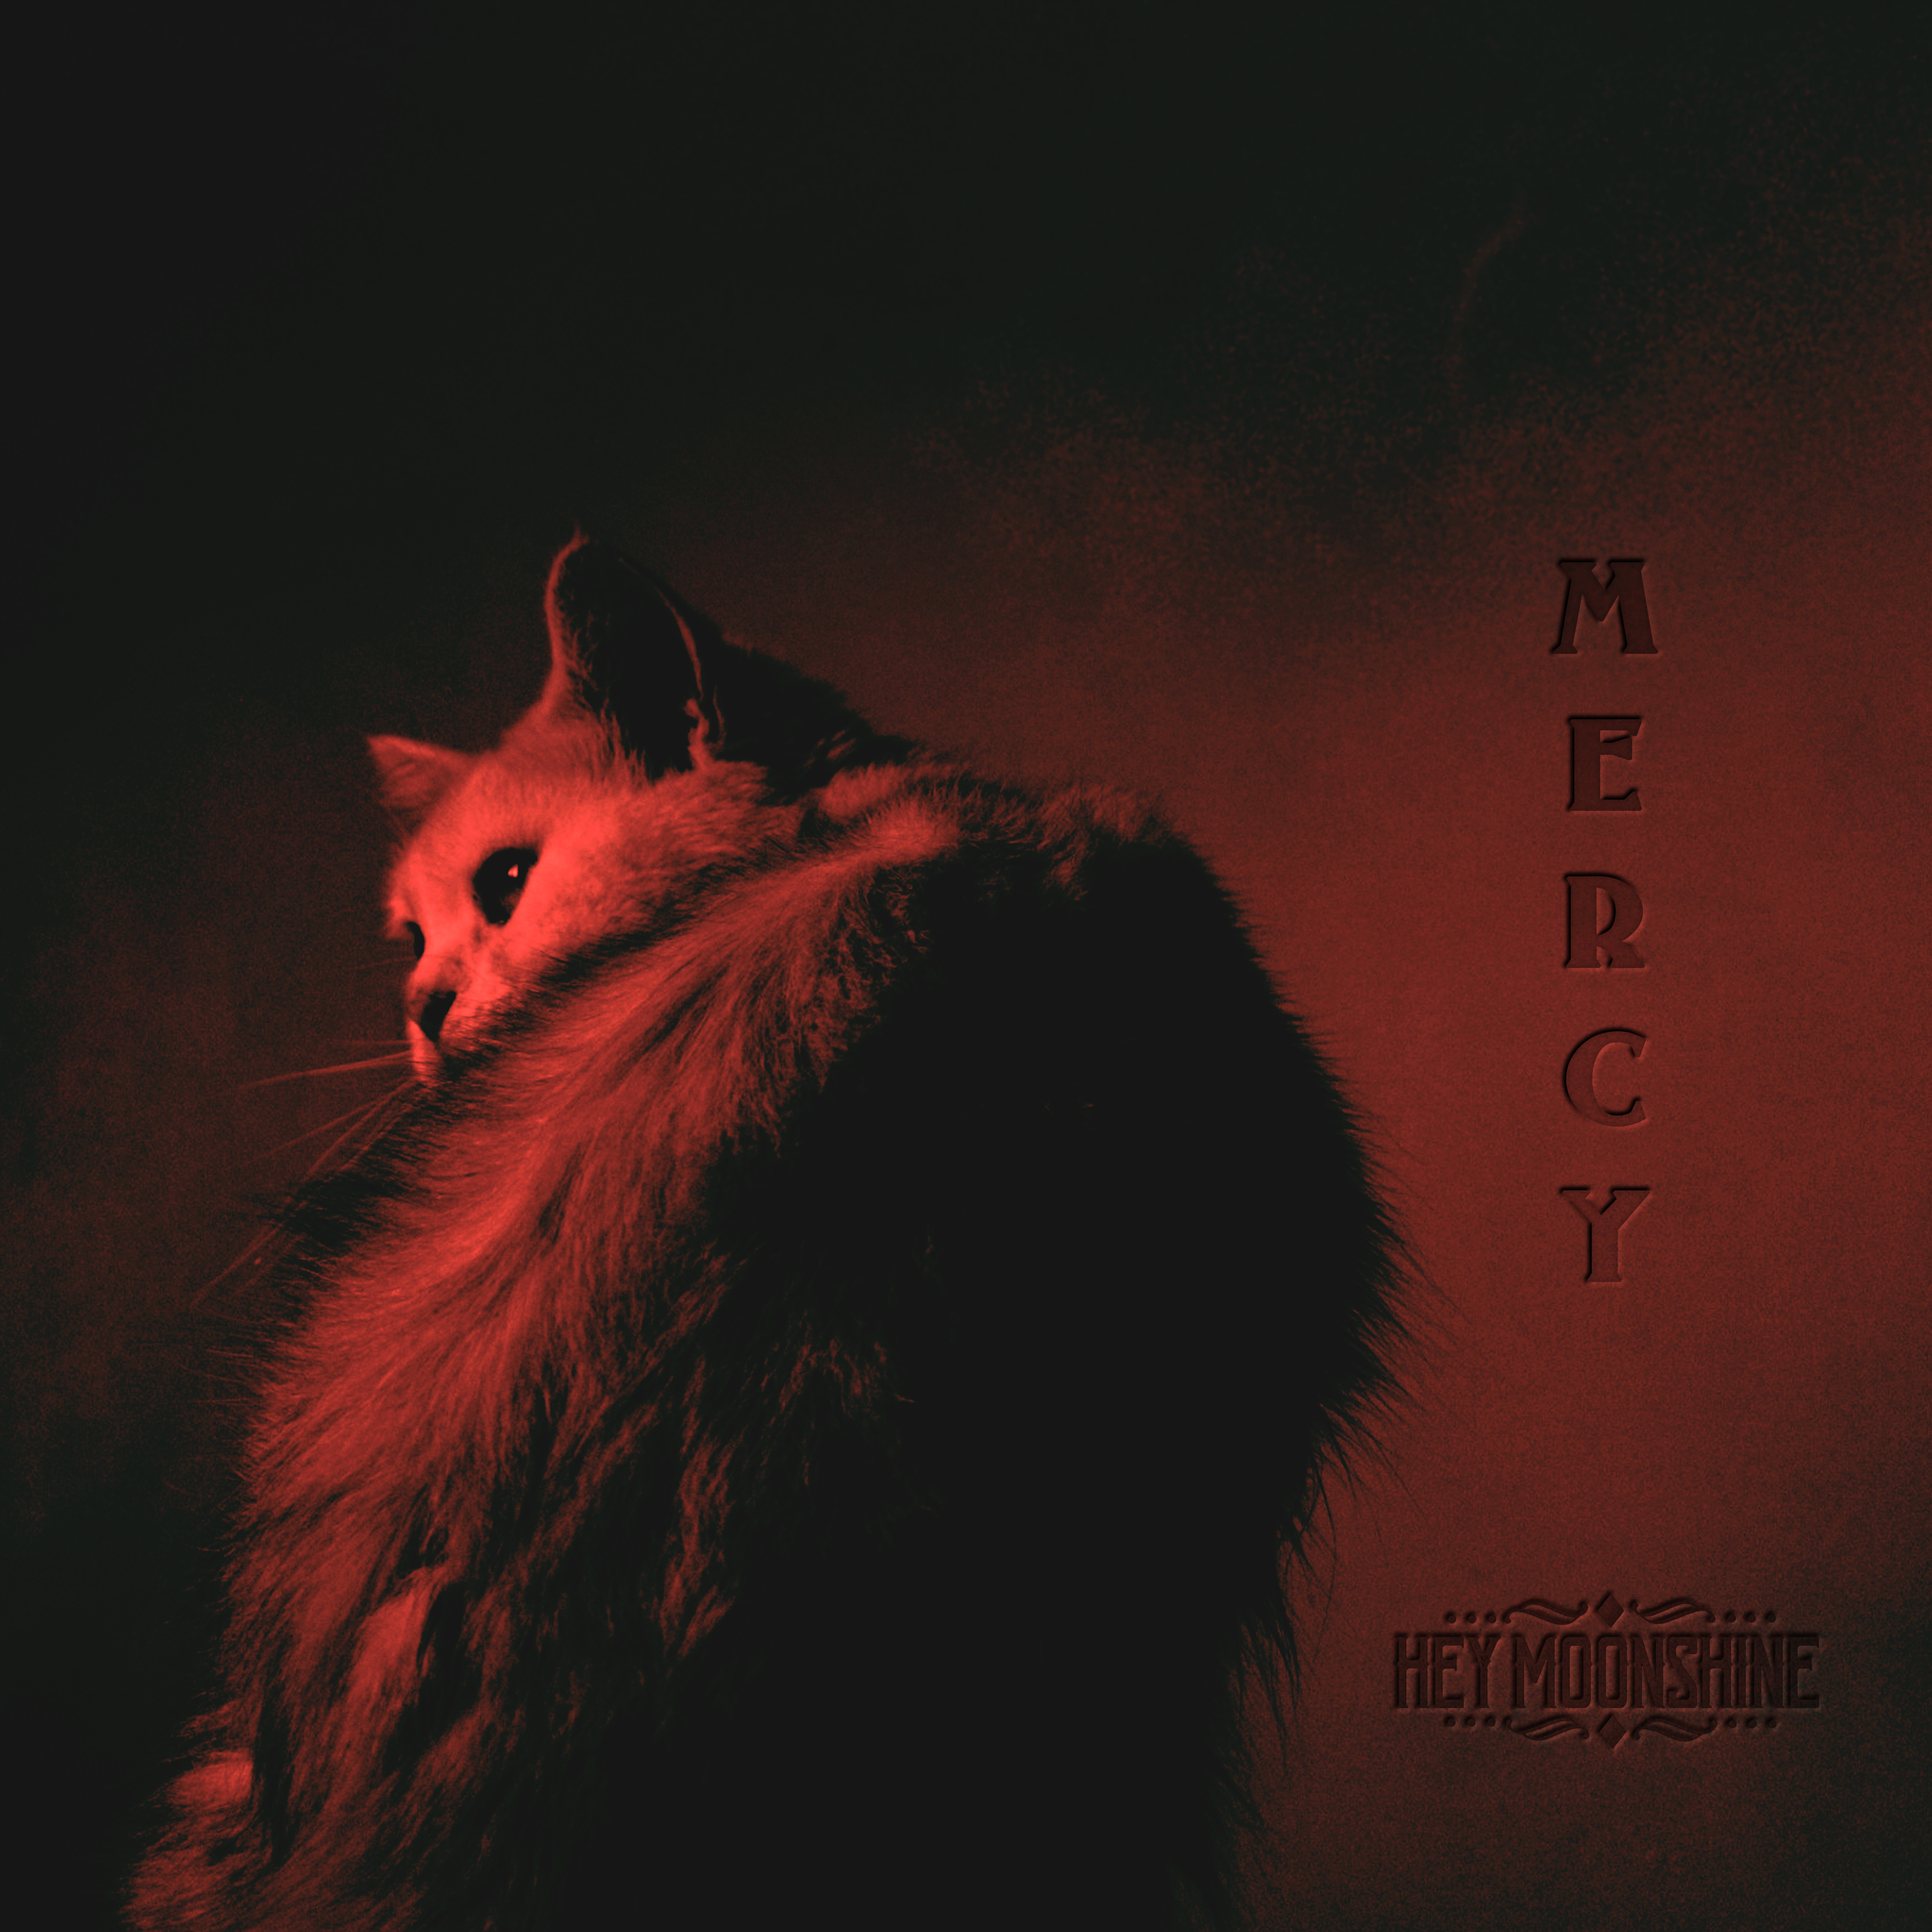 Hey Moonshine Releases Mercy  to Battle Depression